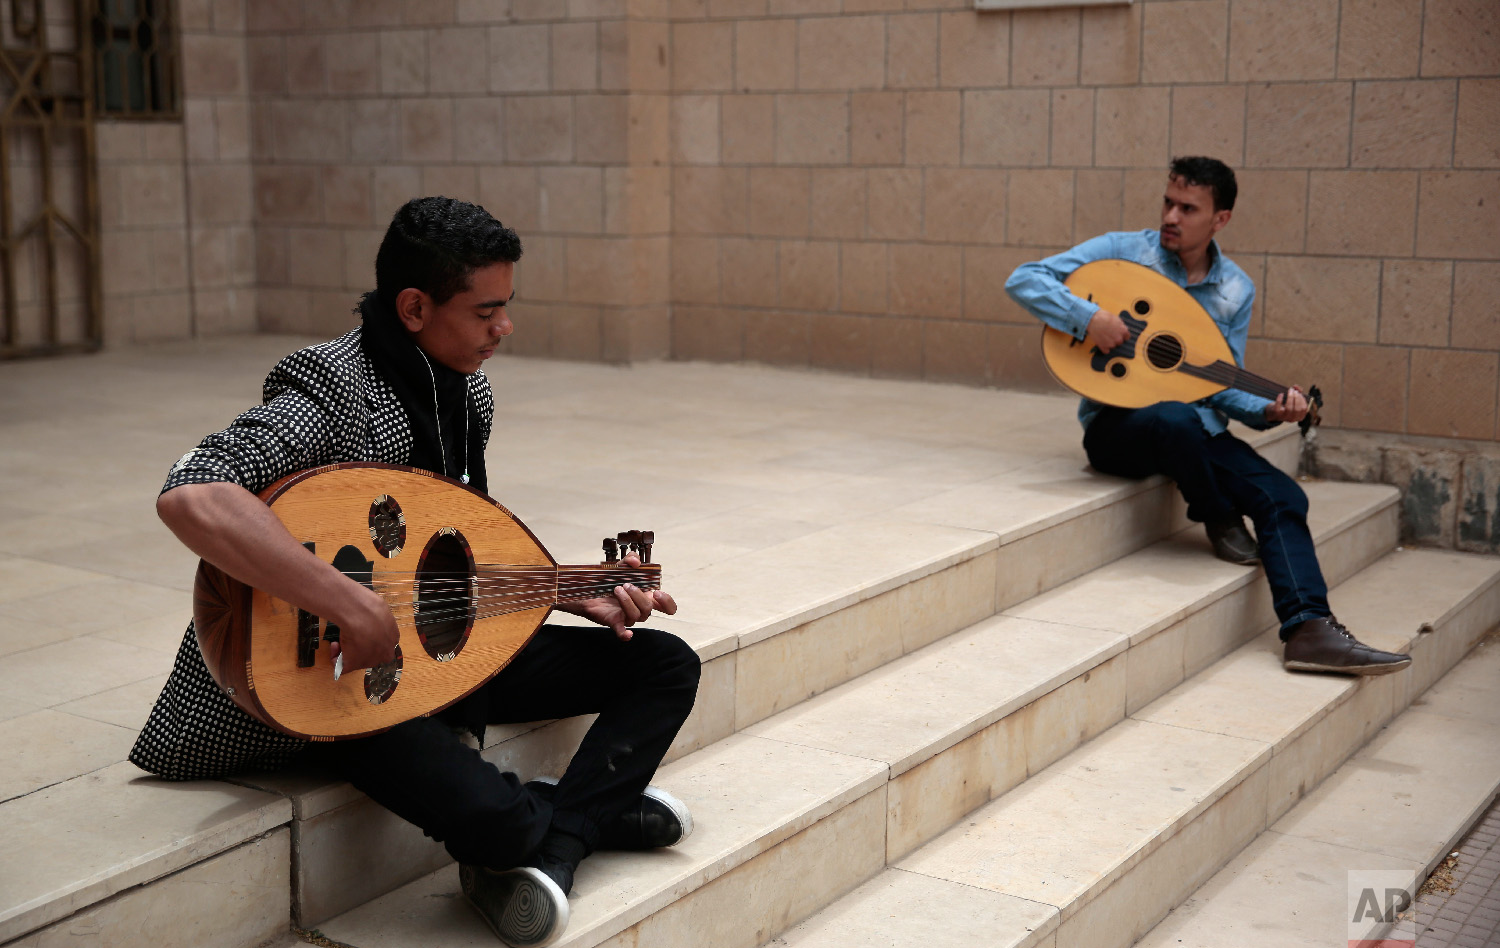 Yemeni music students practice playing the musical instruments during a music class at the Cultural Centre in Sanaa, Yemen on Saturday, April 7, 2018.(AP Photo/Hani Mohammed)